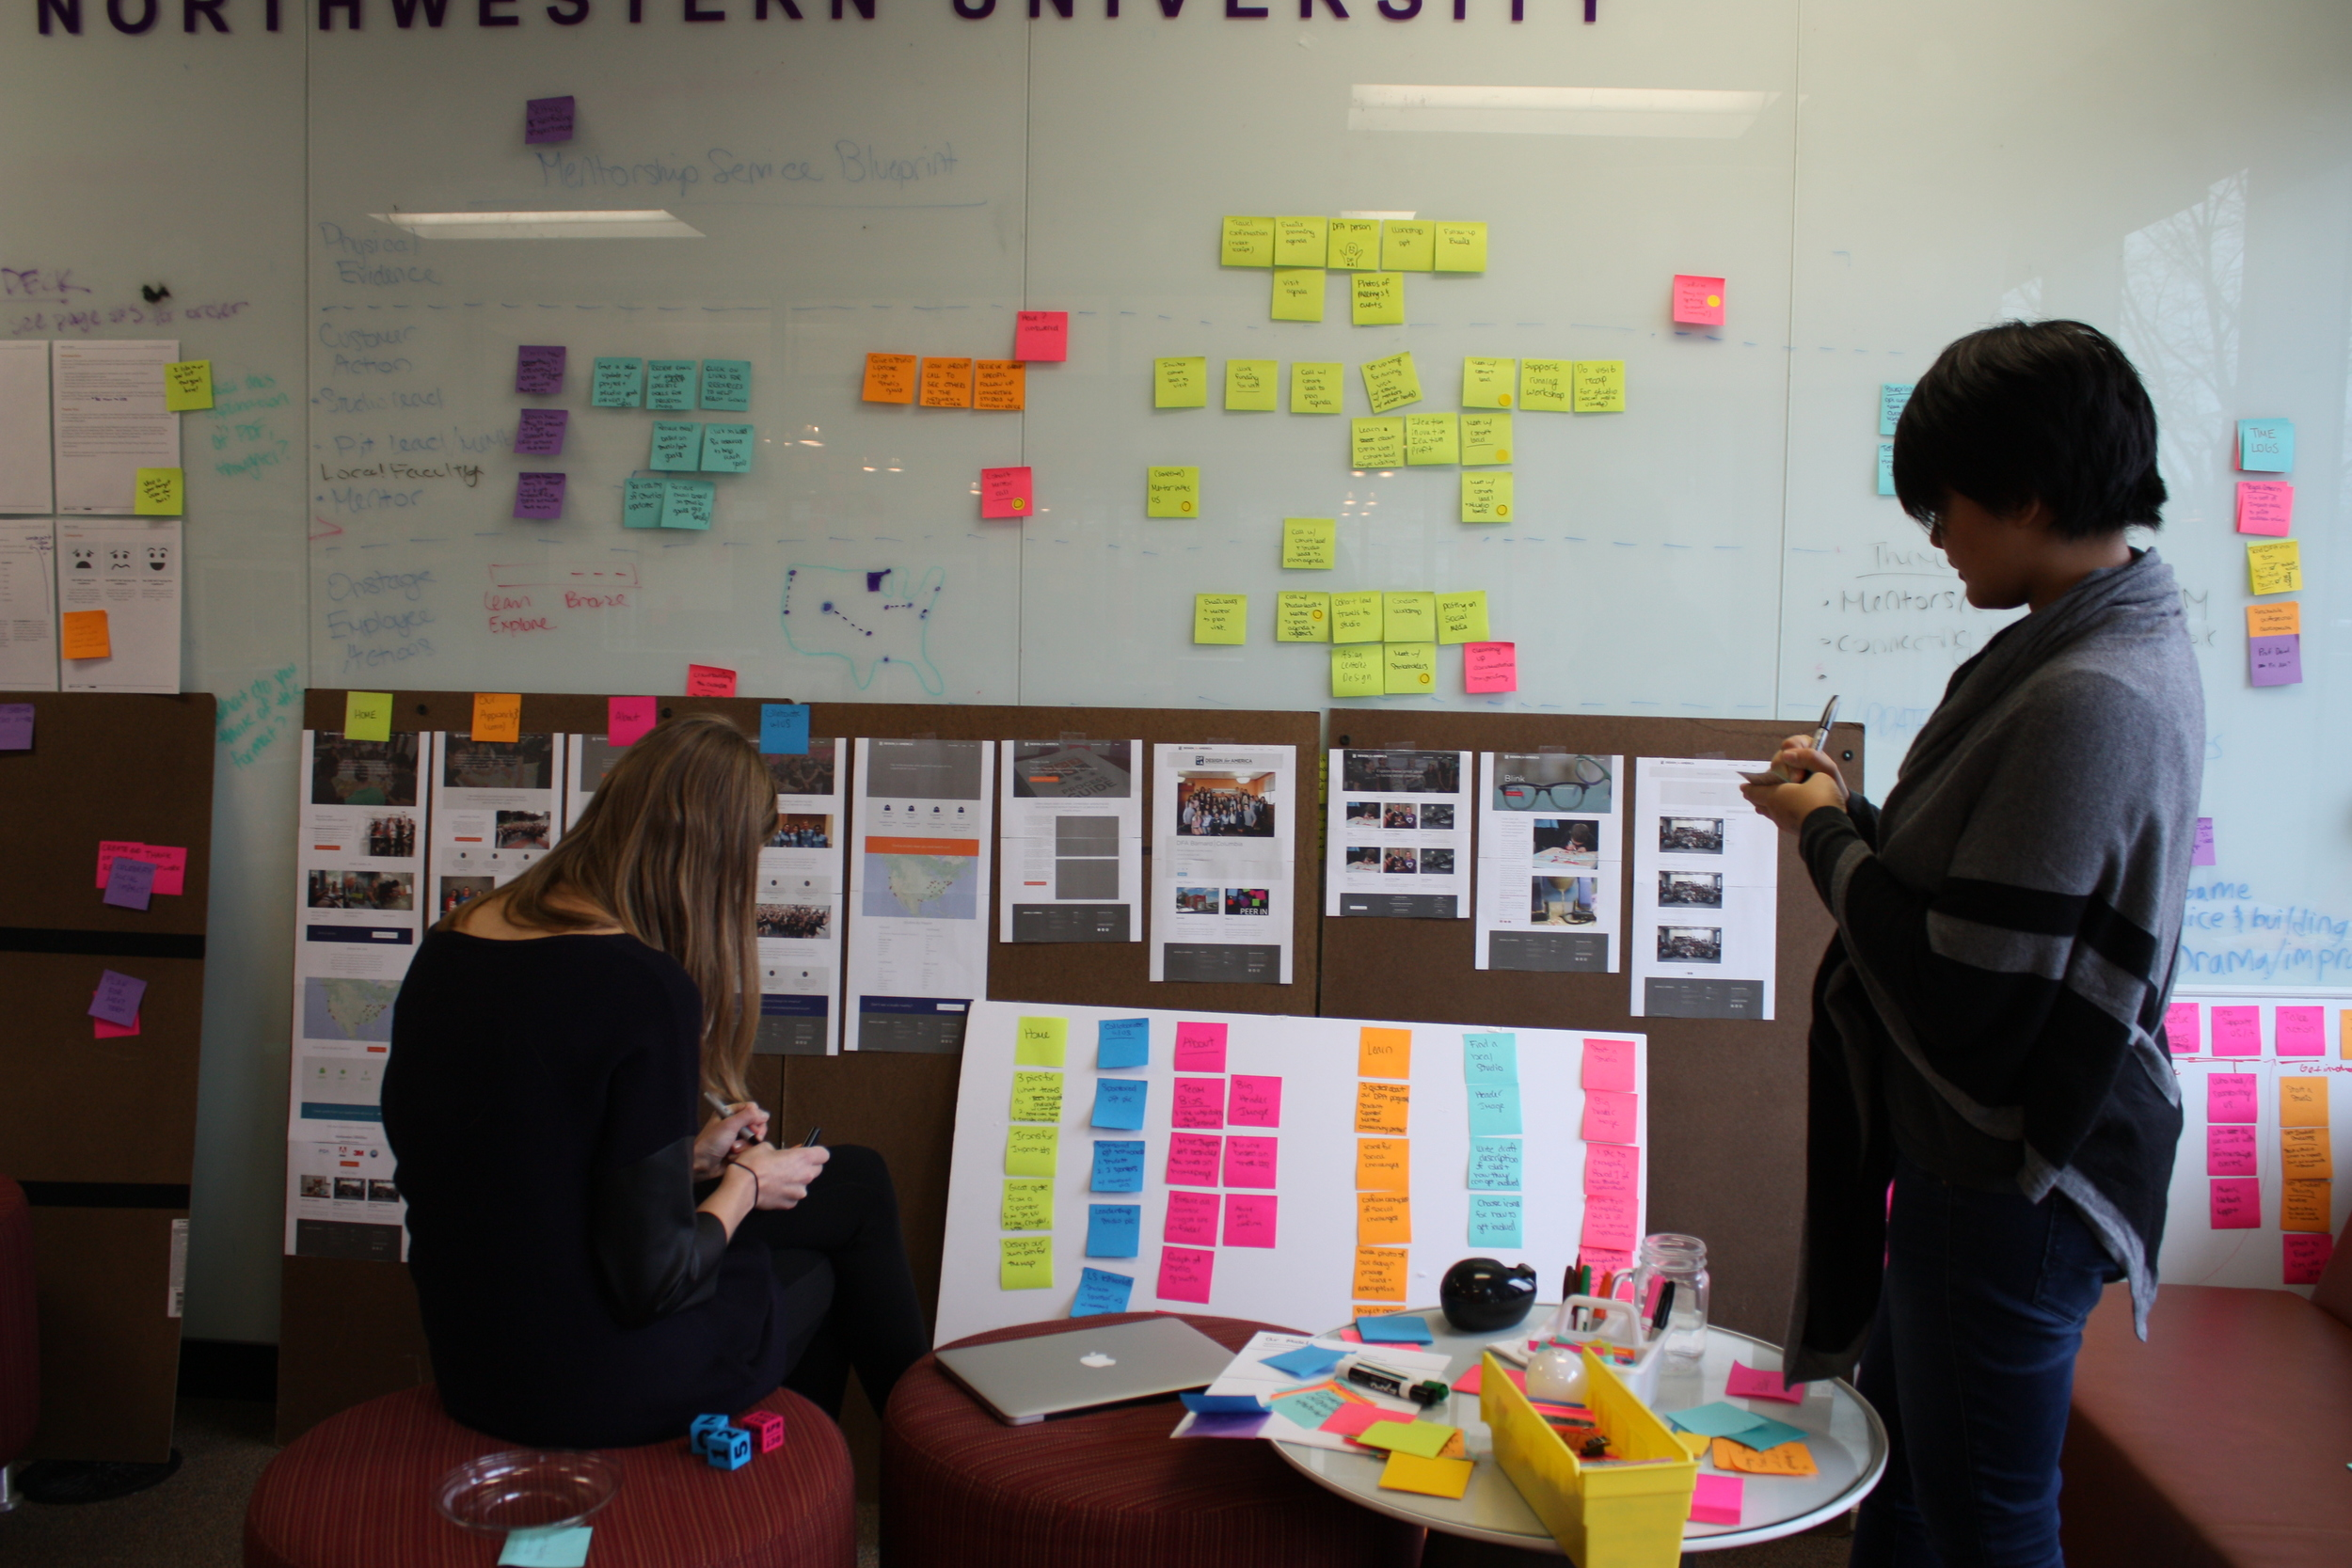 Here we laid out all the mockups to assign content responsibilities to the team.